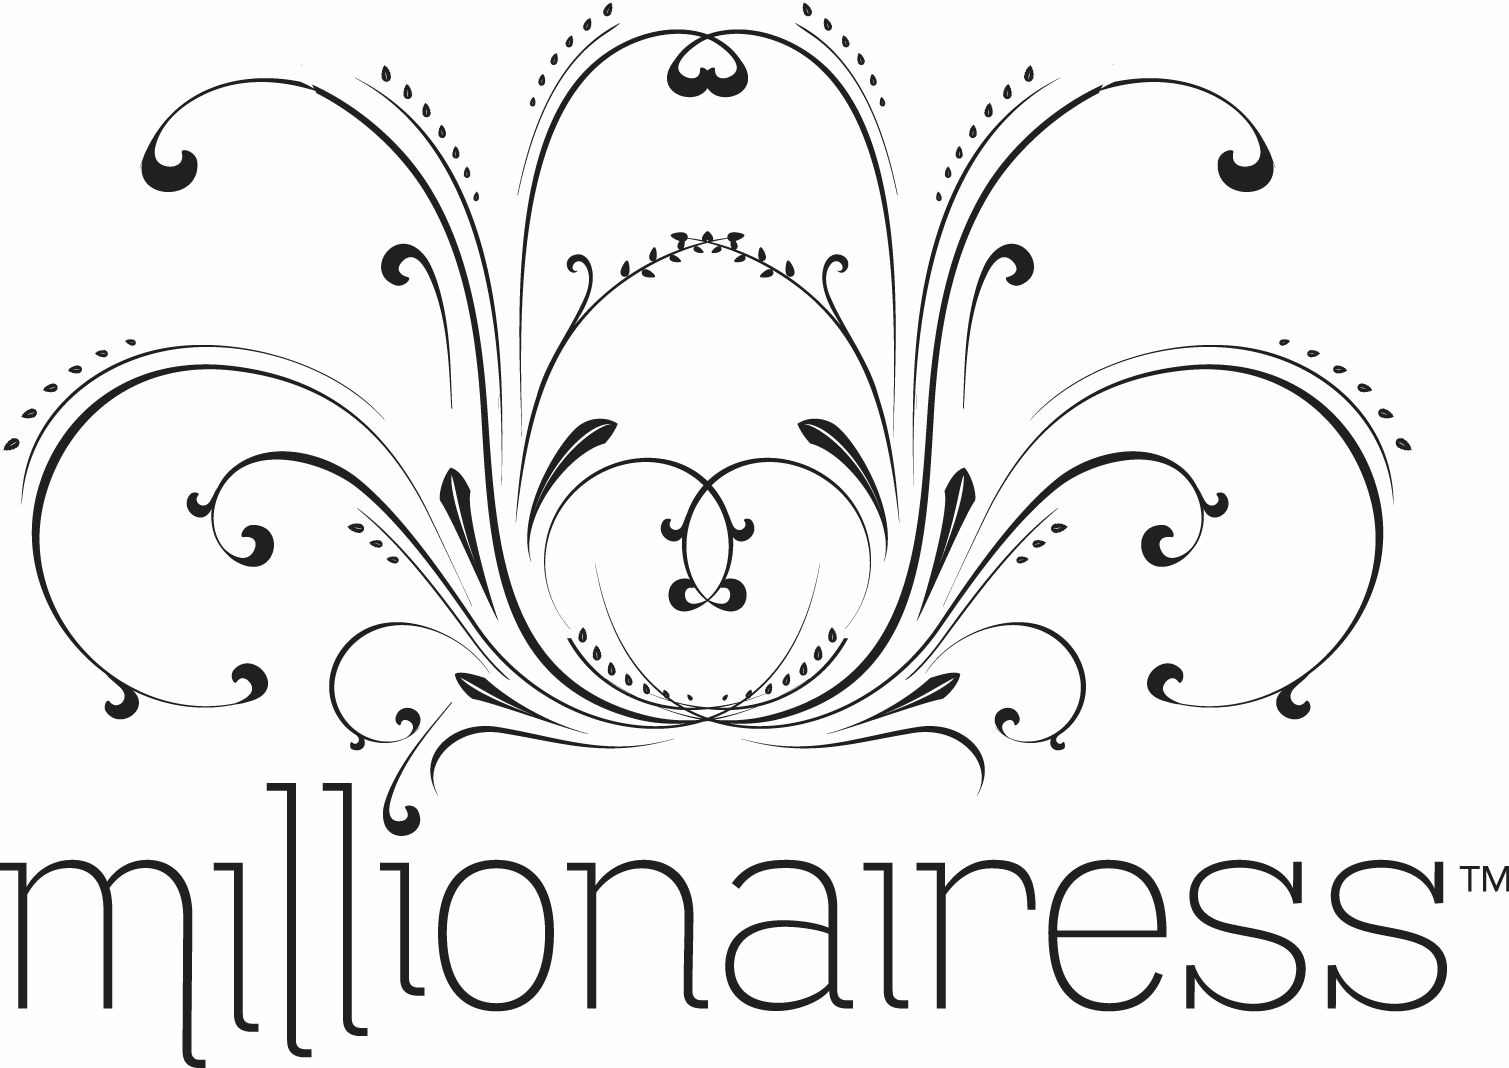 Millionairess has launched our country boards. Some of the